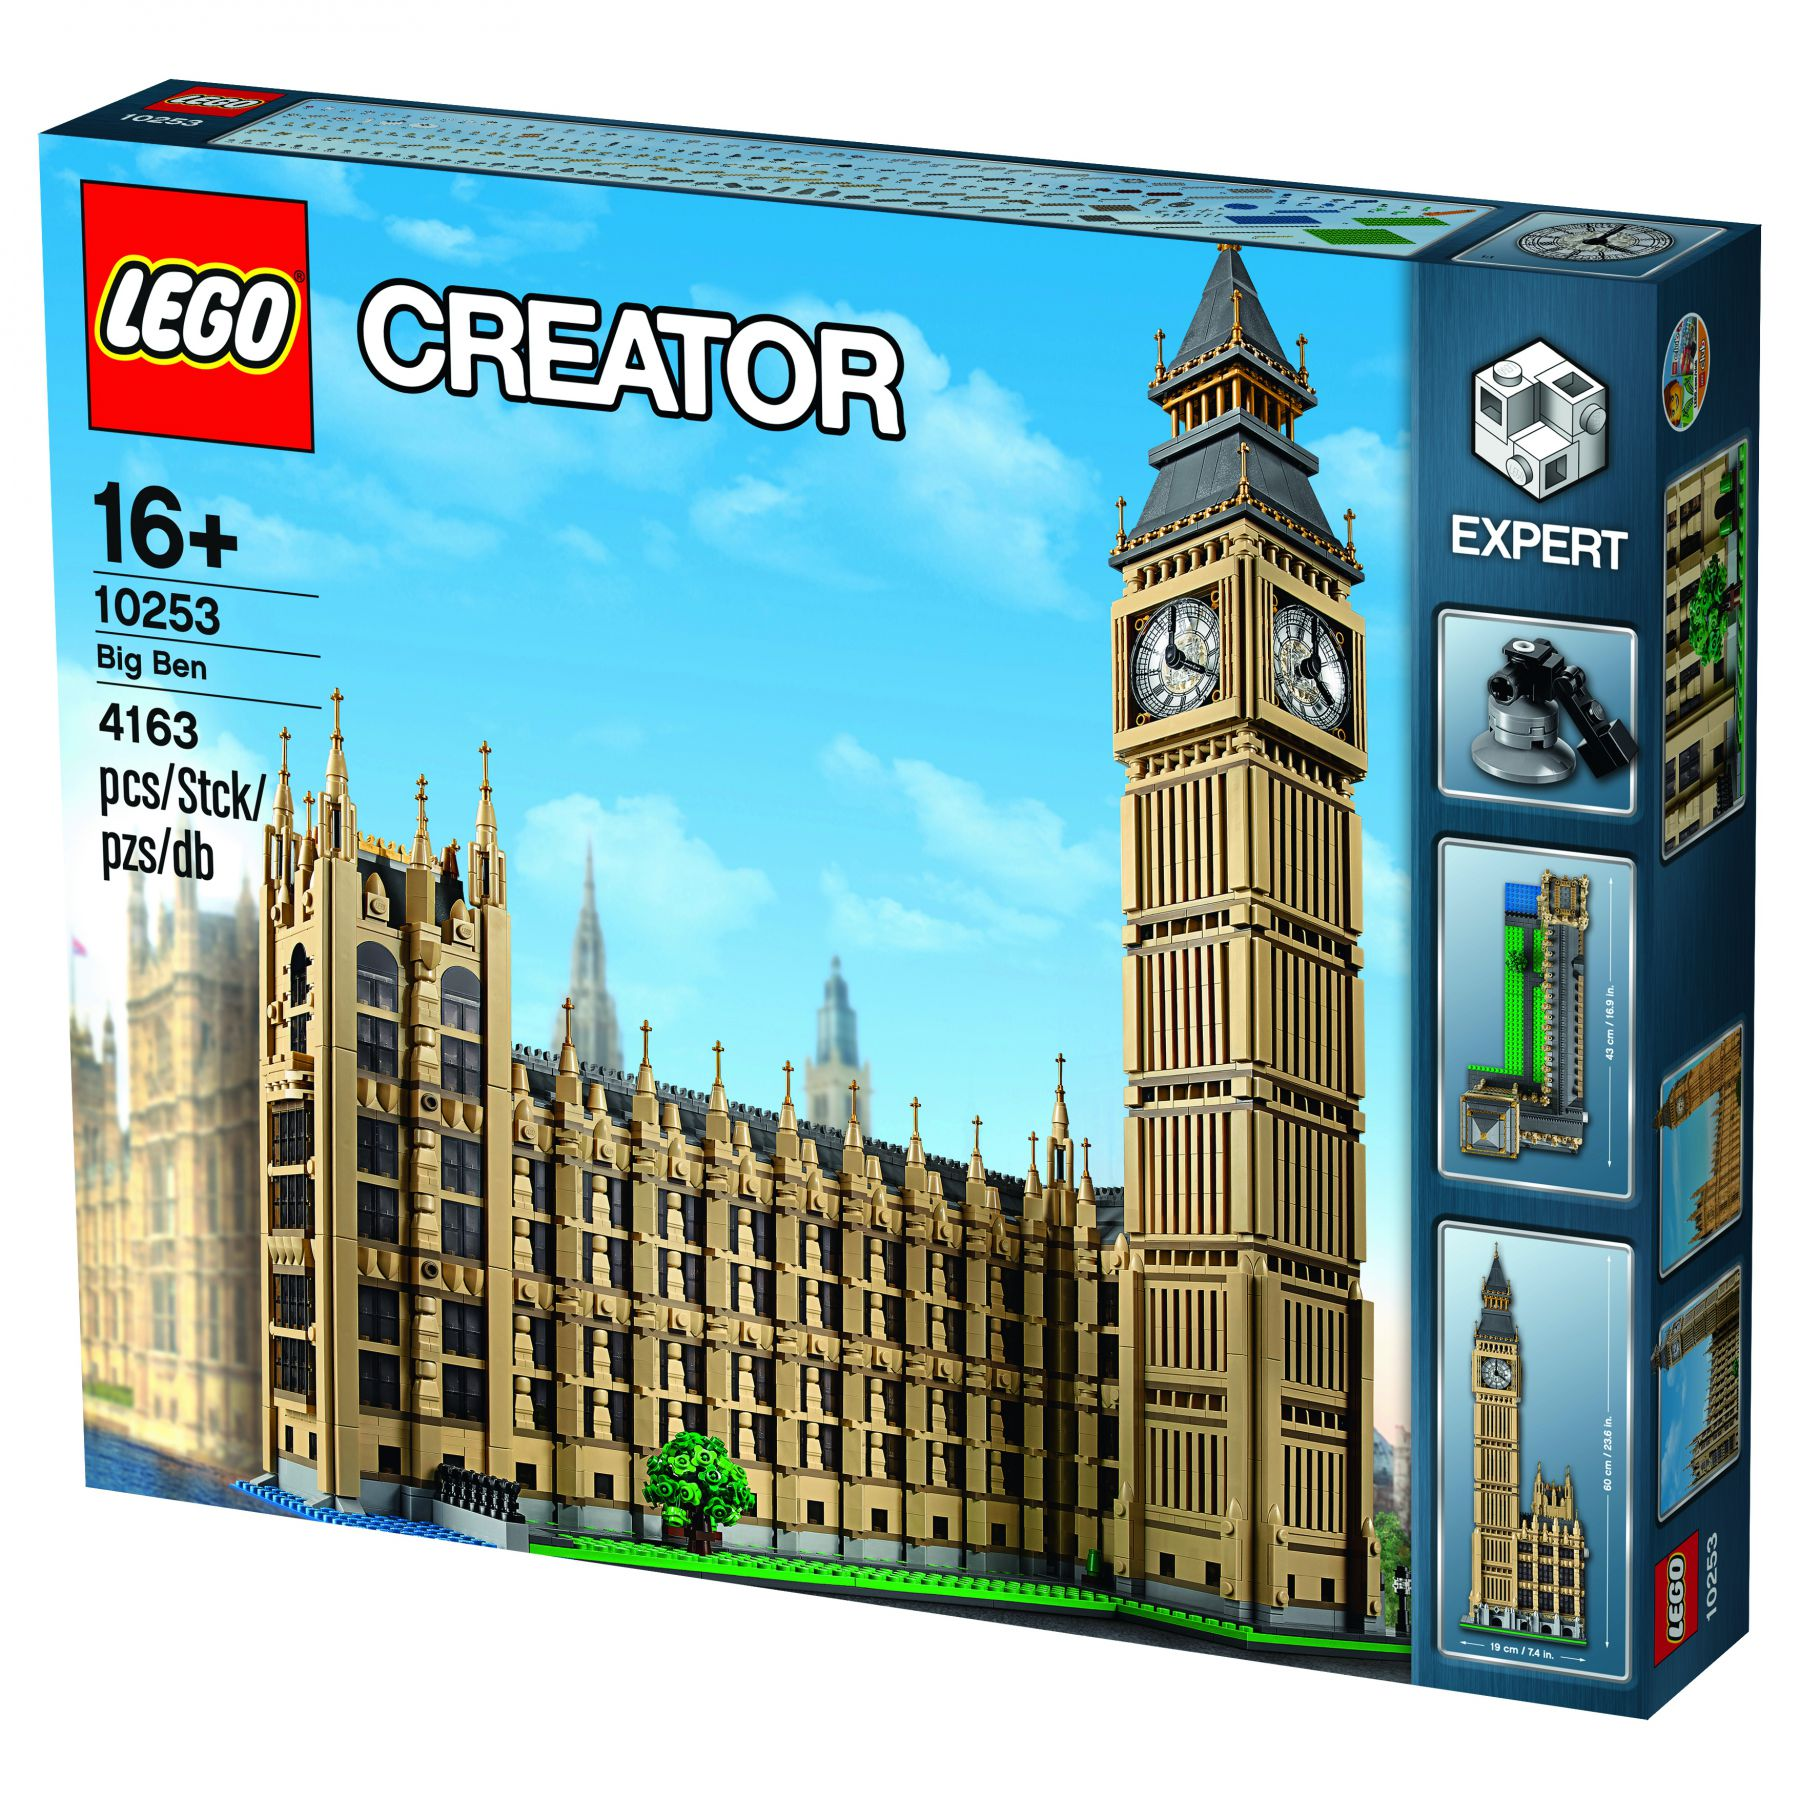 LEGO Advanced Models 10253 Big Ben LEGO_Creator_Big_Ben_10253-2.jpg